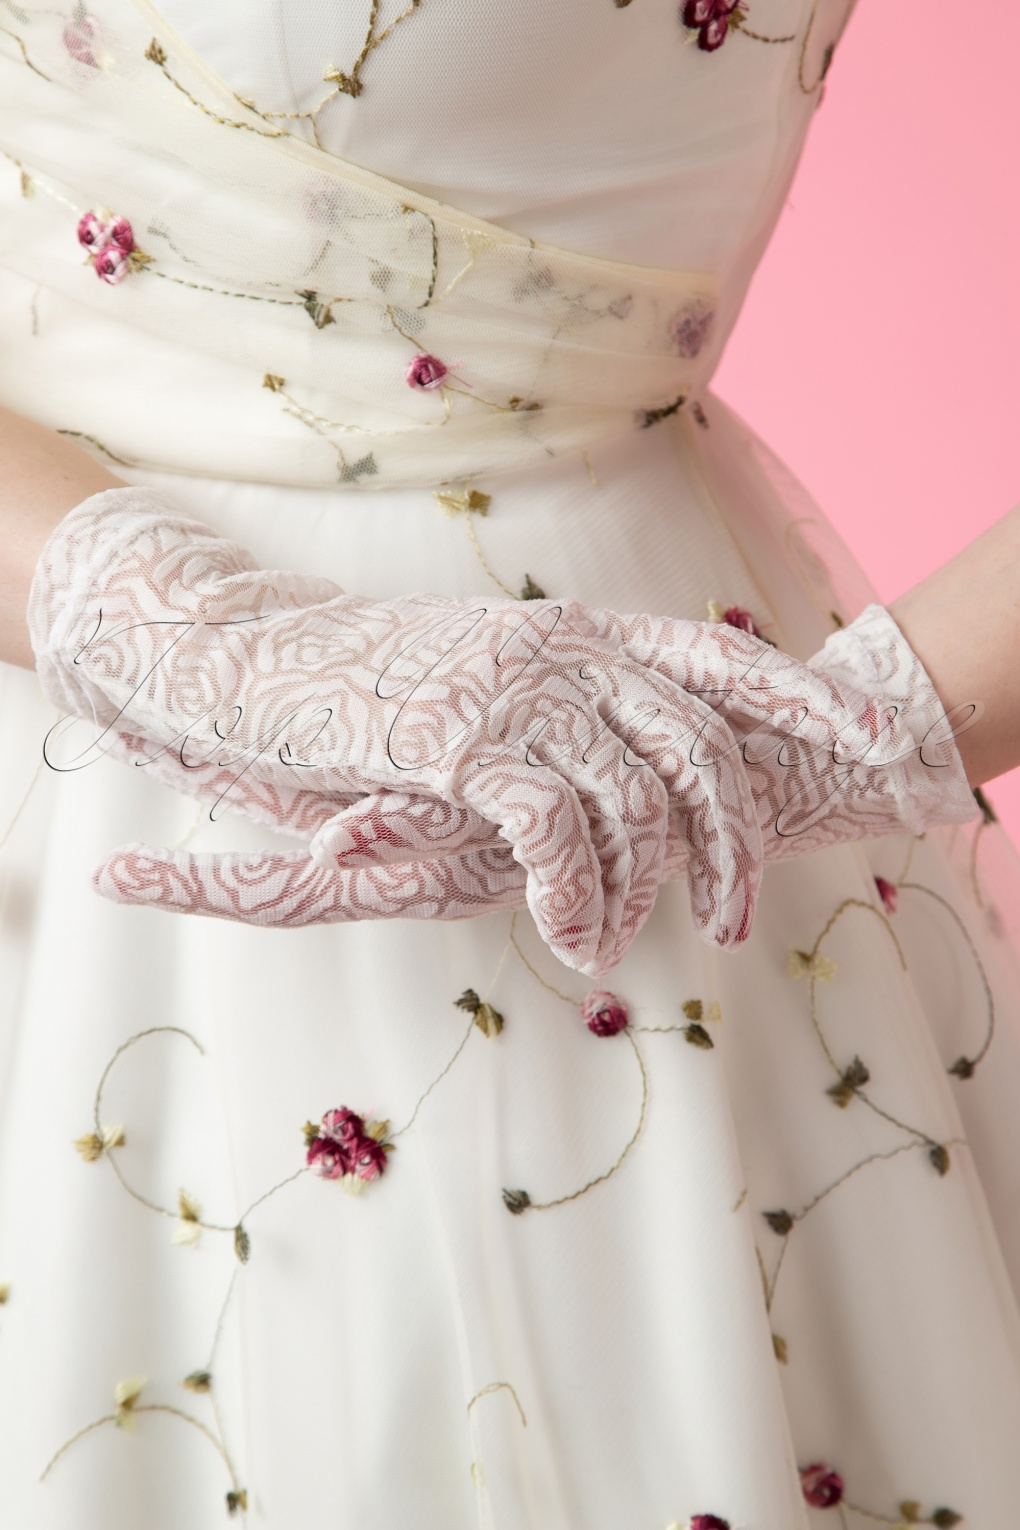 Vintage Style Gloves- Long, Wrist, Evening, Day, Leather, Lace 50s Rosy Romantic White Lace Gloves £22.22 AT vintagedancer.com